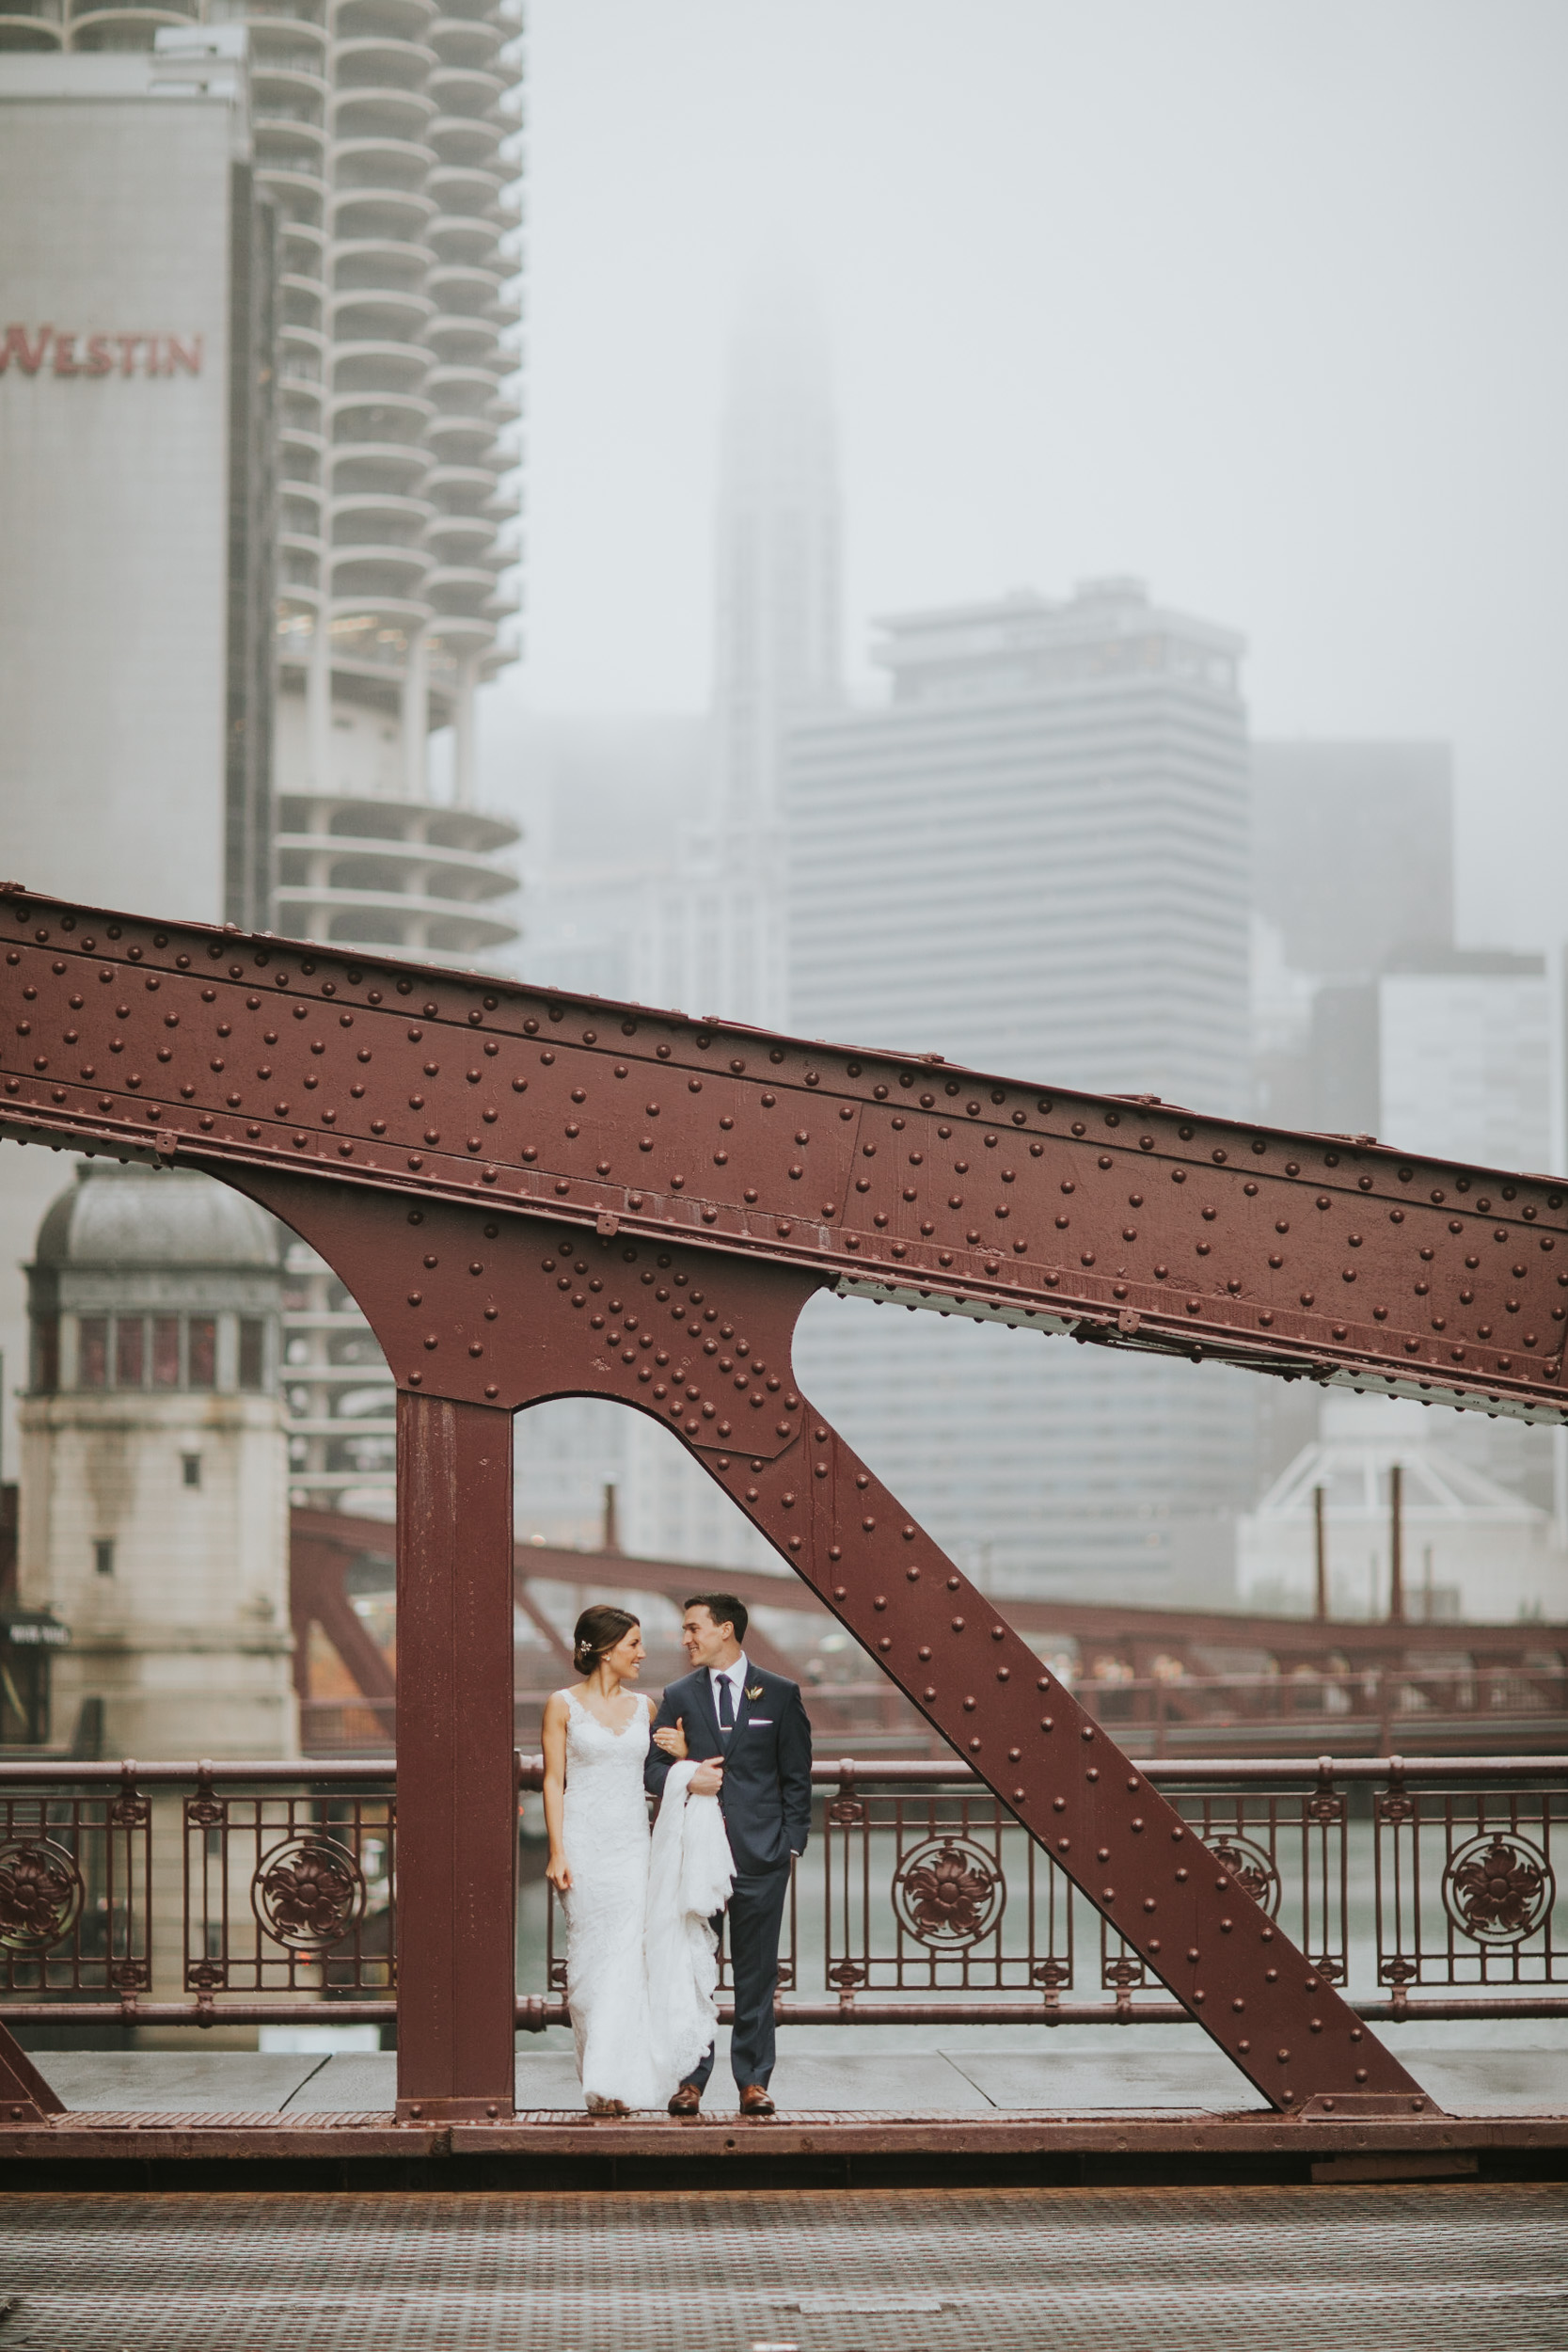 HaroldWashingtonLibraryWedding_Polly C Photography 1704144337.jpg